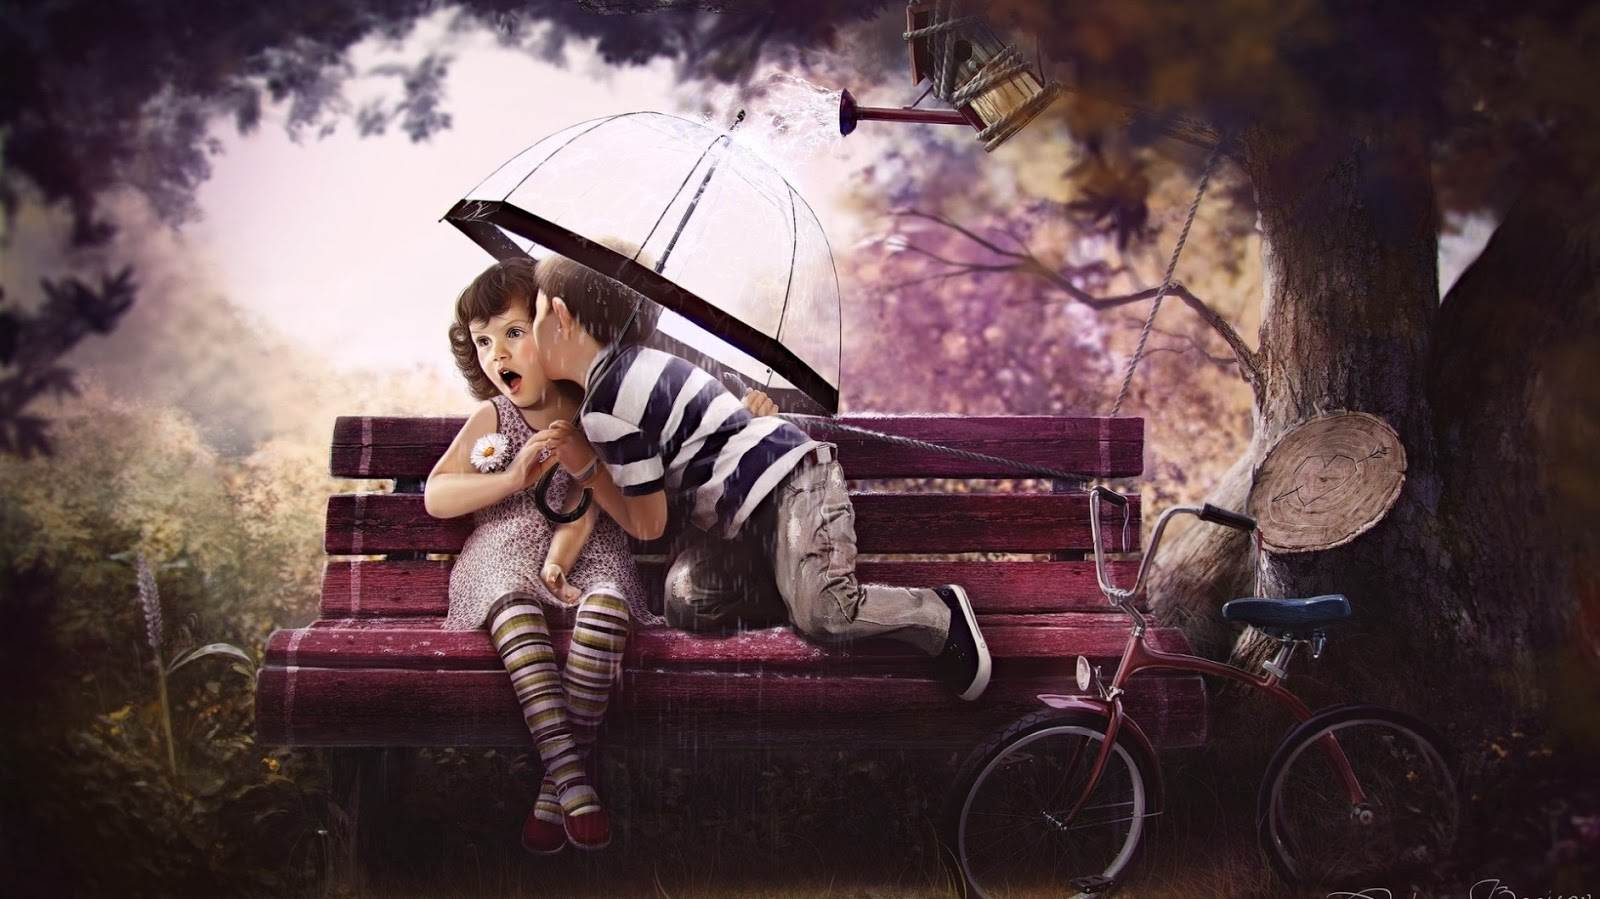 boy and girl love image and wallpaper